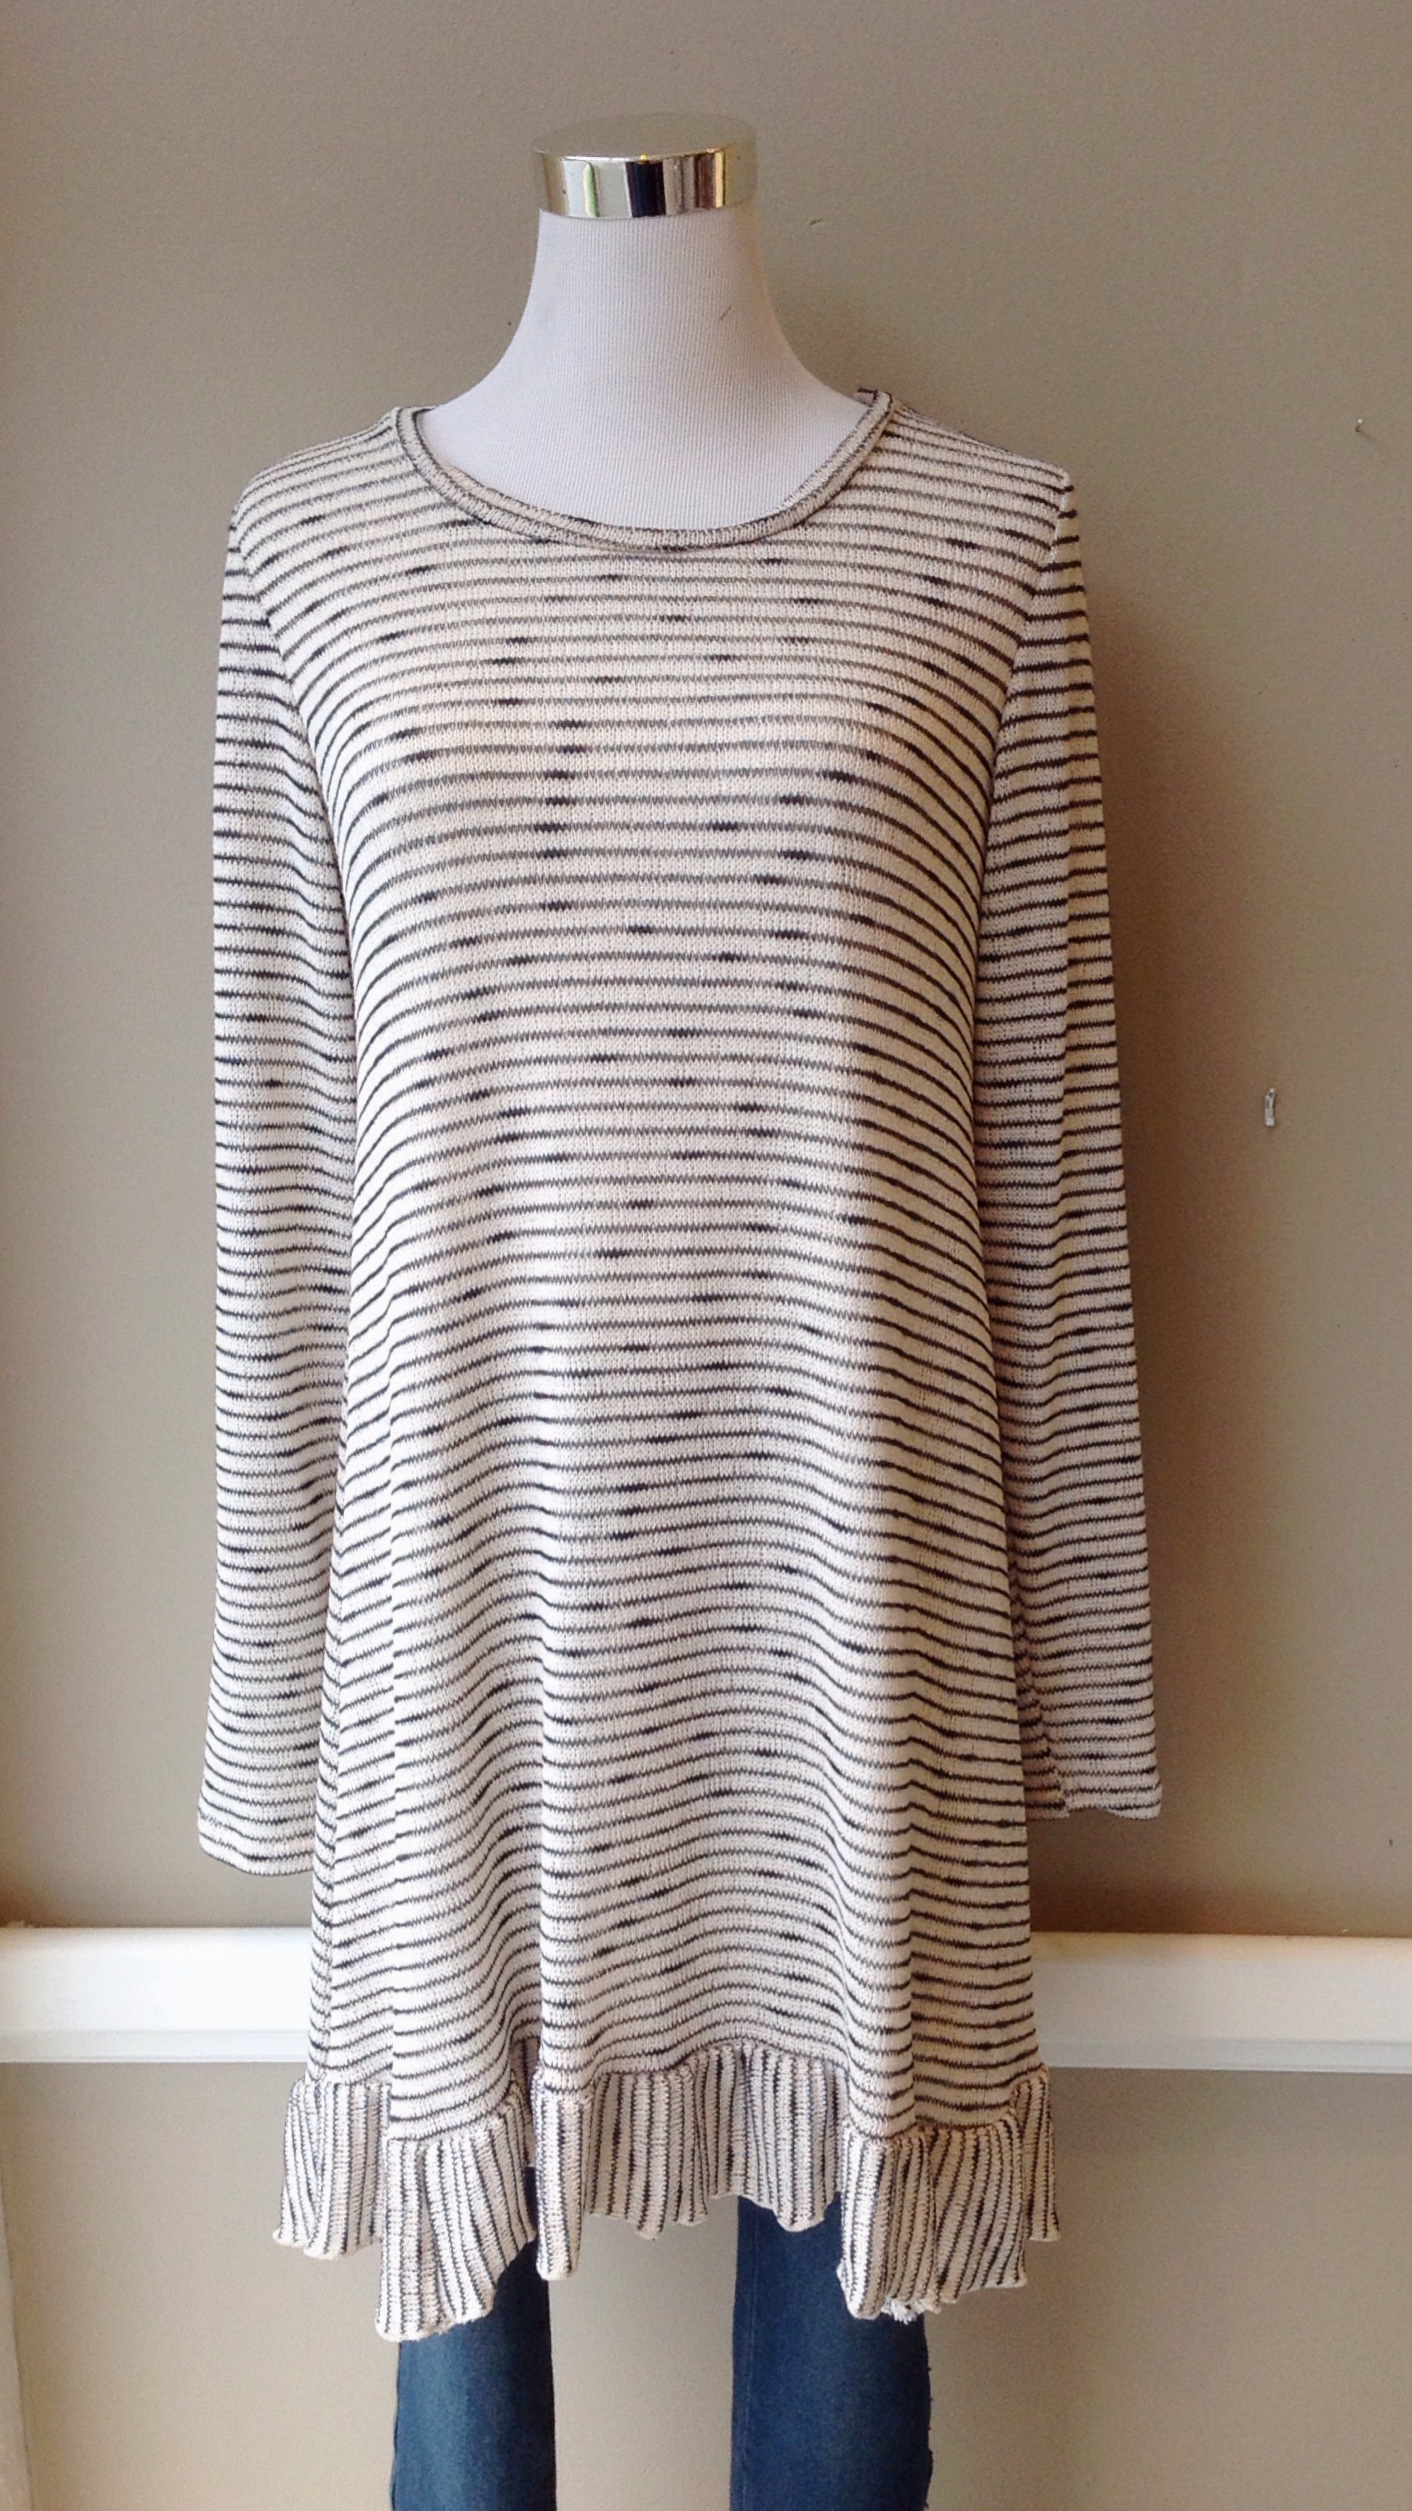 Stripe knit tunic with ruffle hem in cream/charcoal, $35